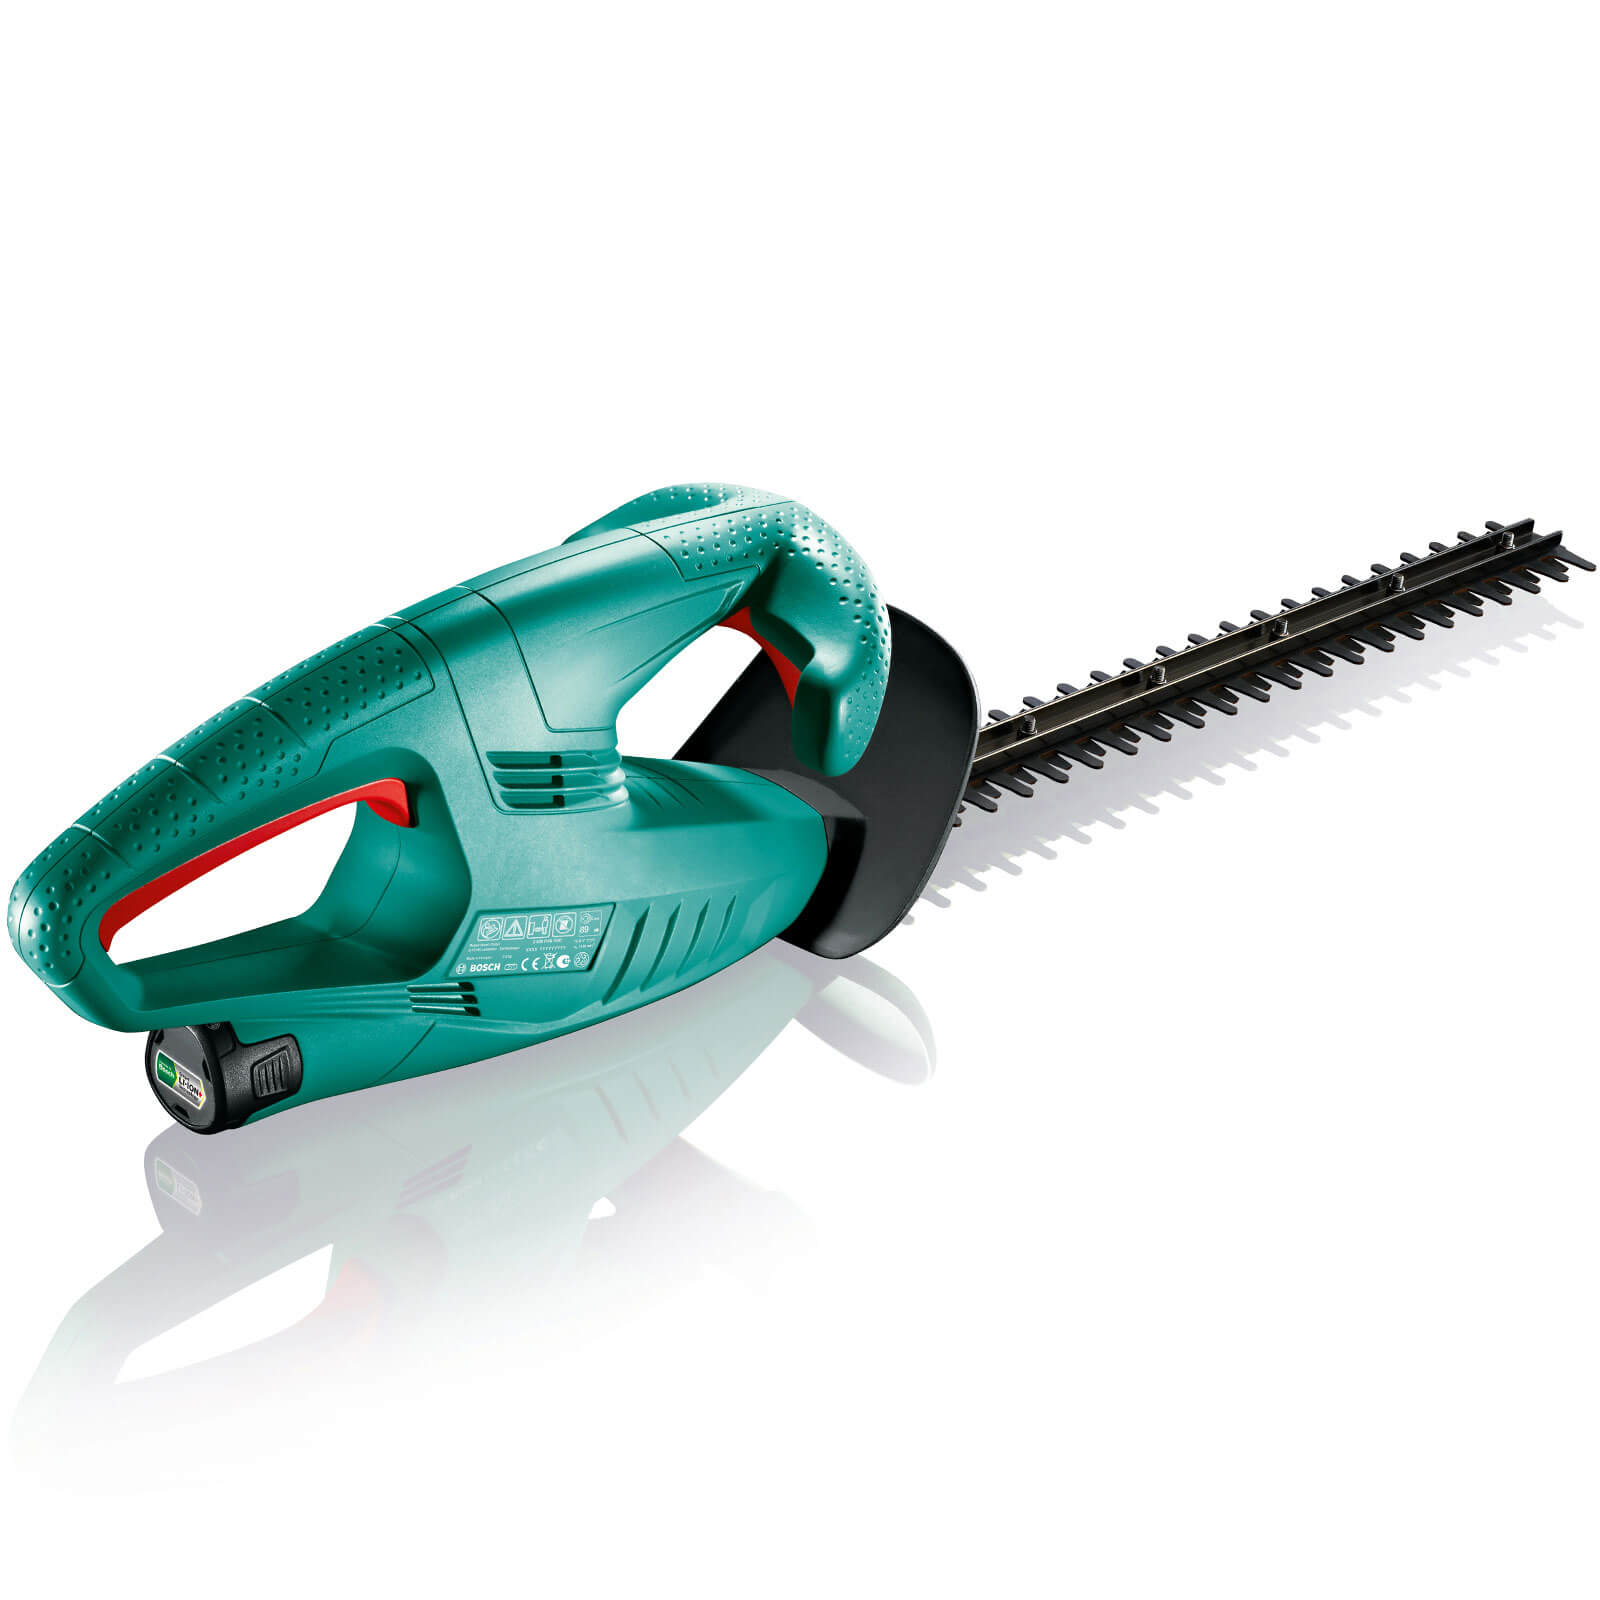 Bosch hedge trimmer shop for cheap garden tools and save for Cheap landscaping tools